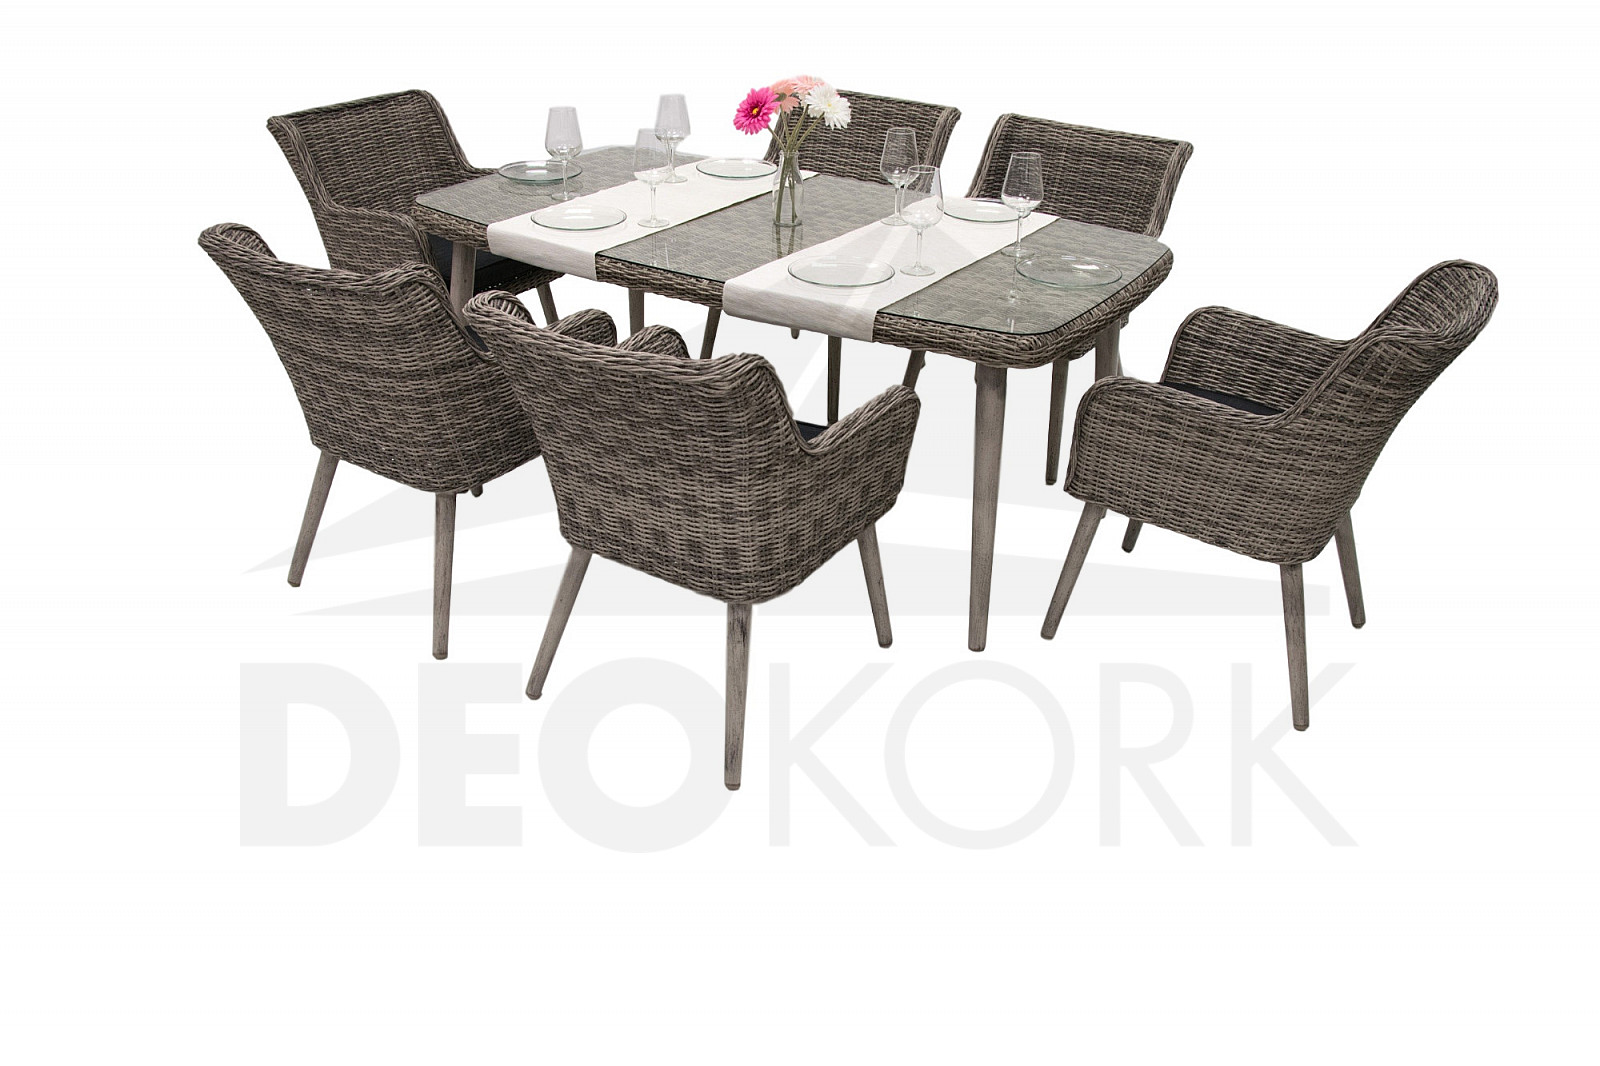 gartenm belset aus polyrattan victoria 1 6 i. Black Bedroom Furniture Sets. Home Design Ideas